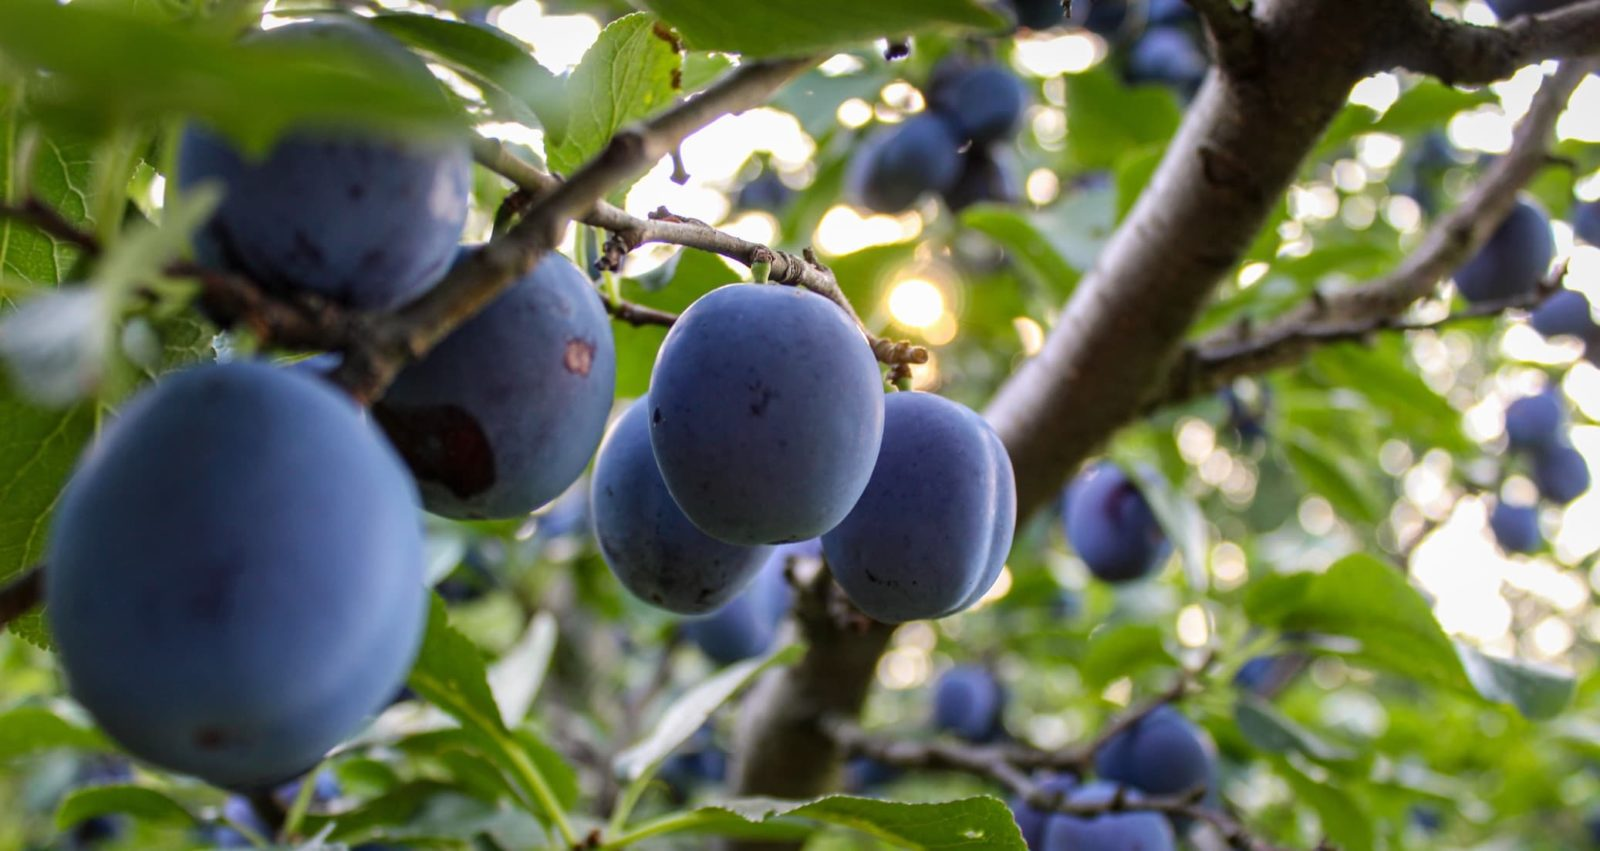 ripe plums fruits hanging from the branches of a tree